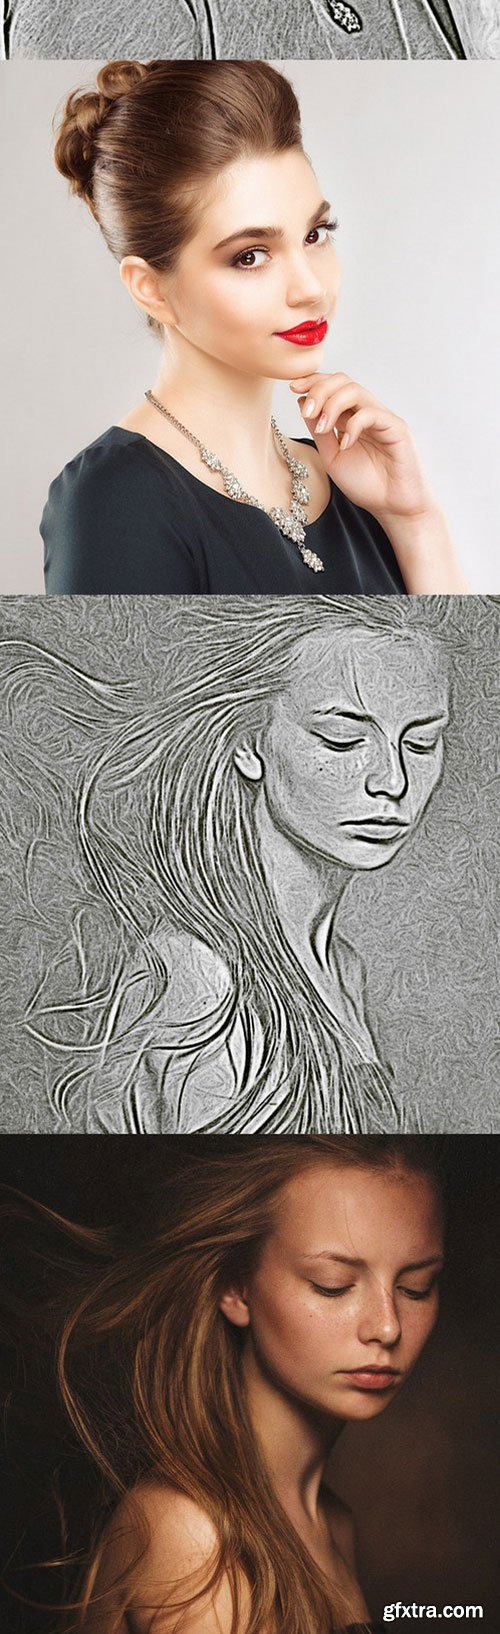 GraphicRiver - Drawing Art Action 11650799